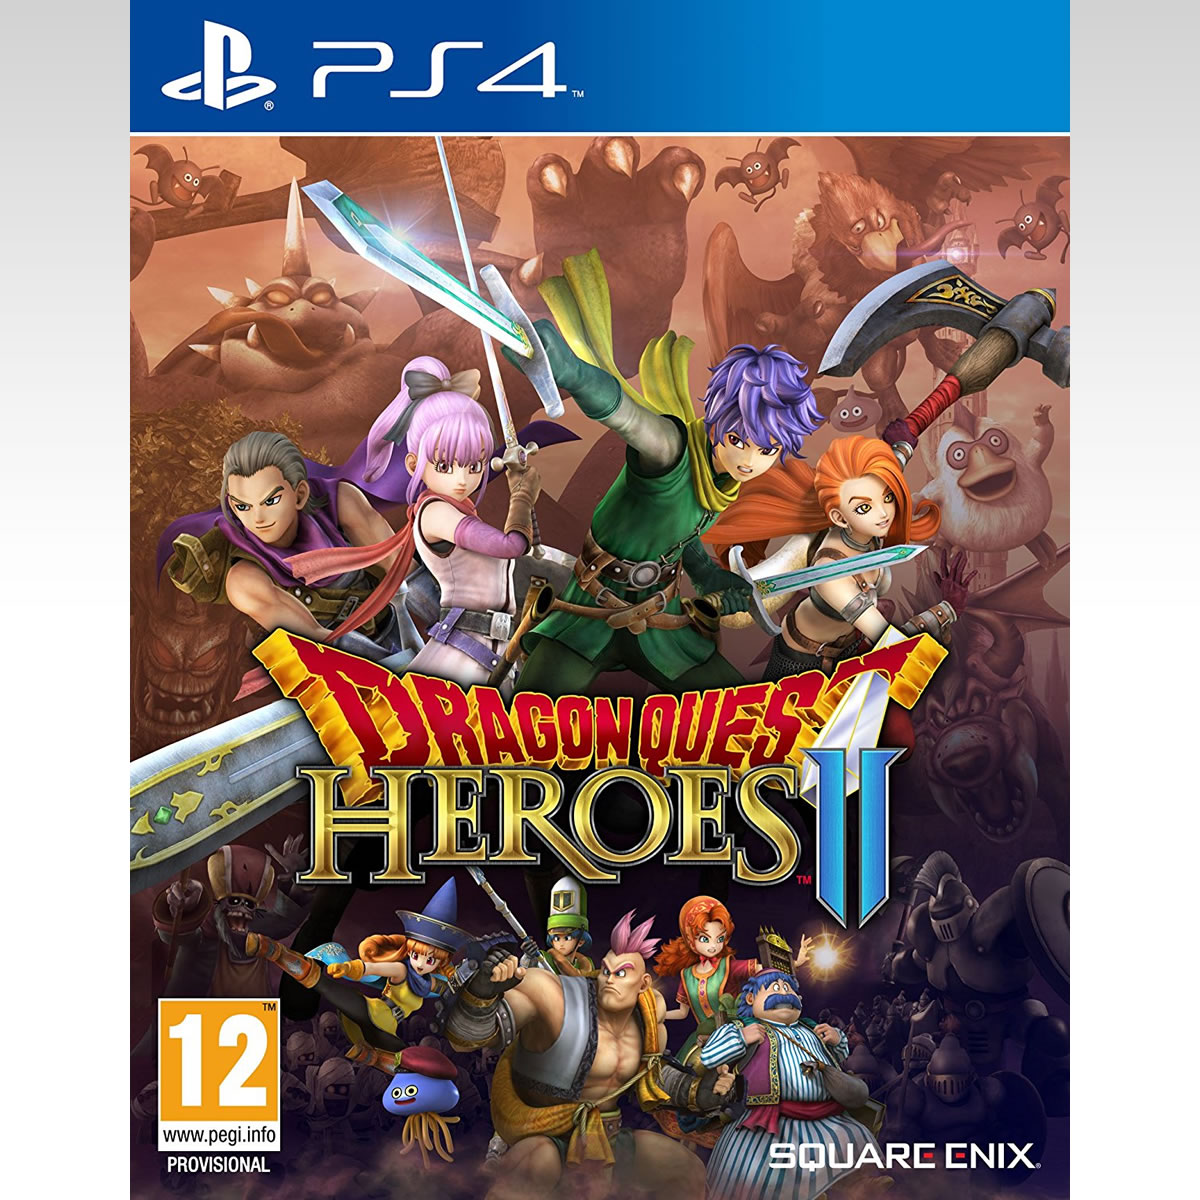 DRAGON QUEST: HEROES 2 (PS4)